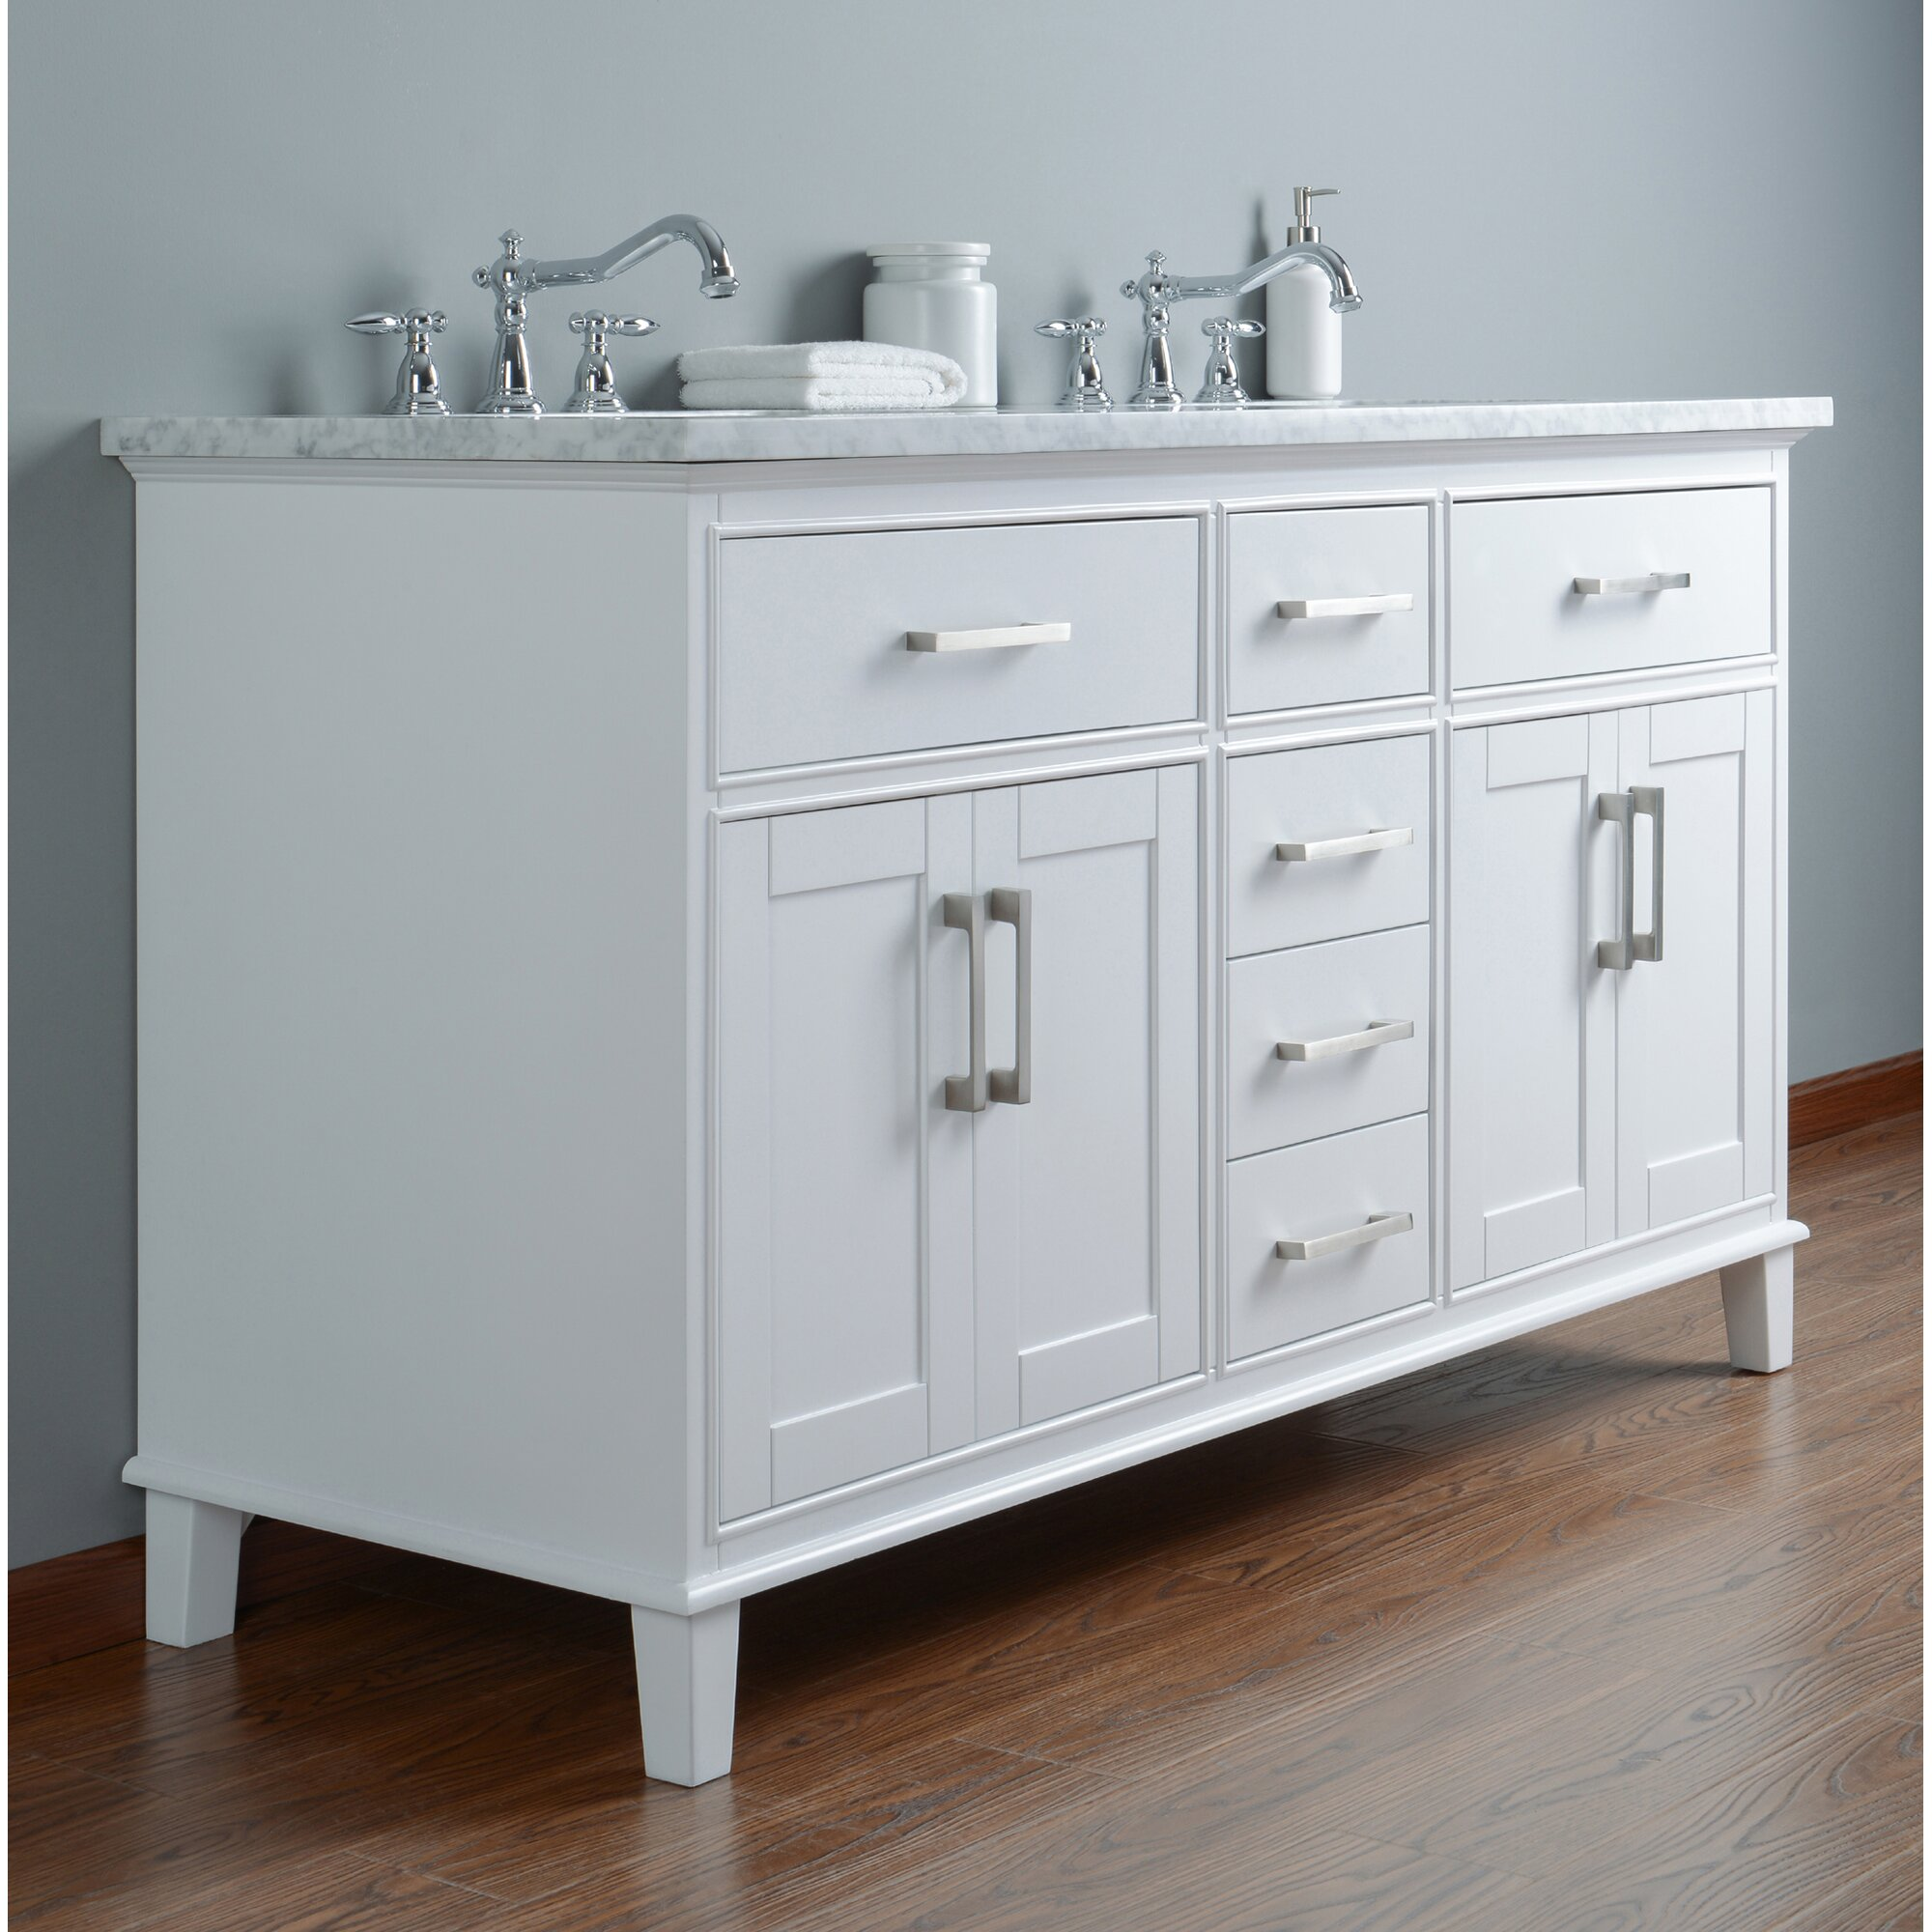 Rosecliff Heights Curtner 60 Double Bathroom Vanity Set